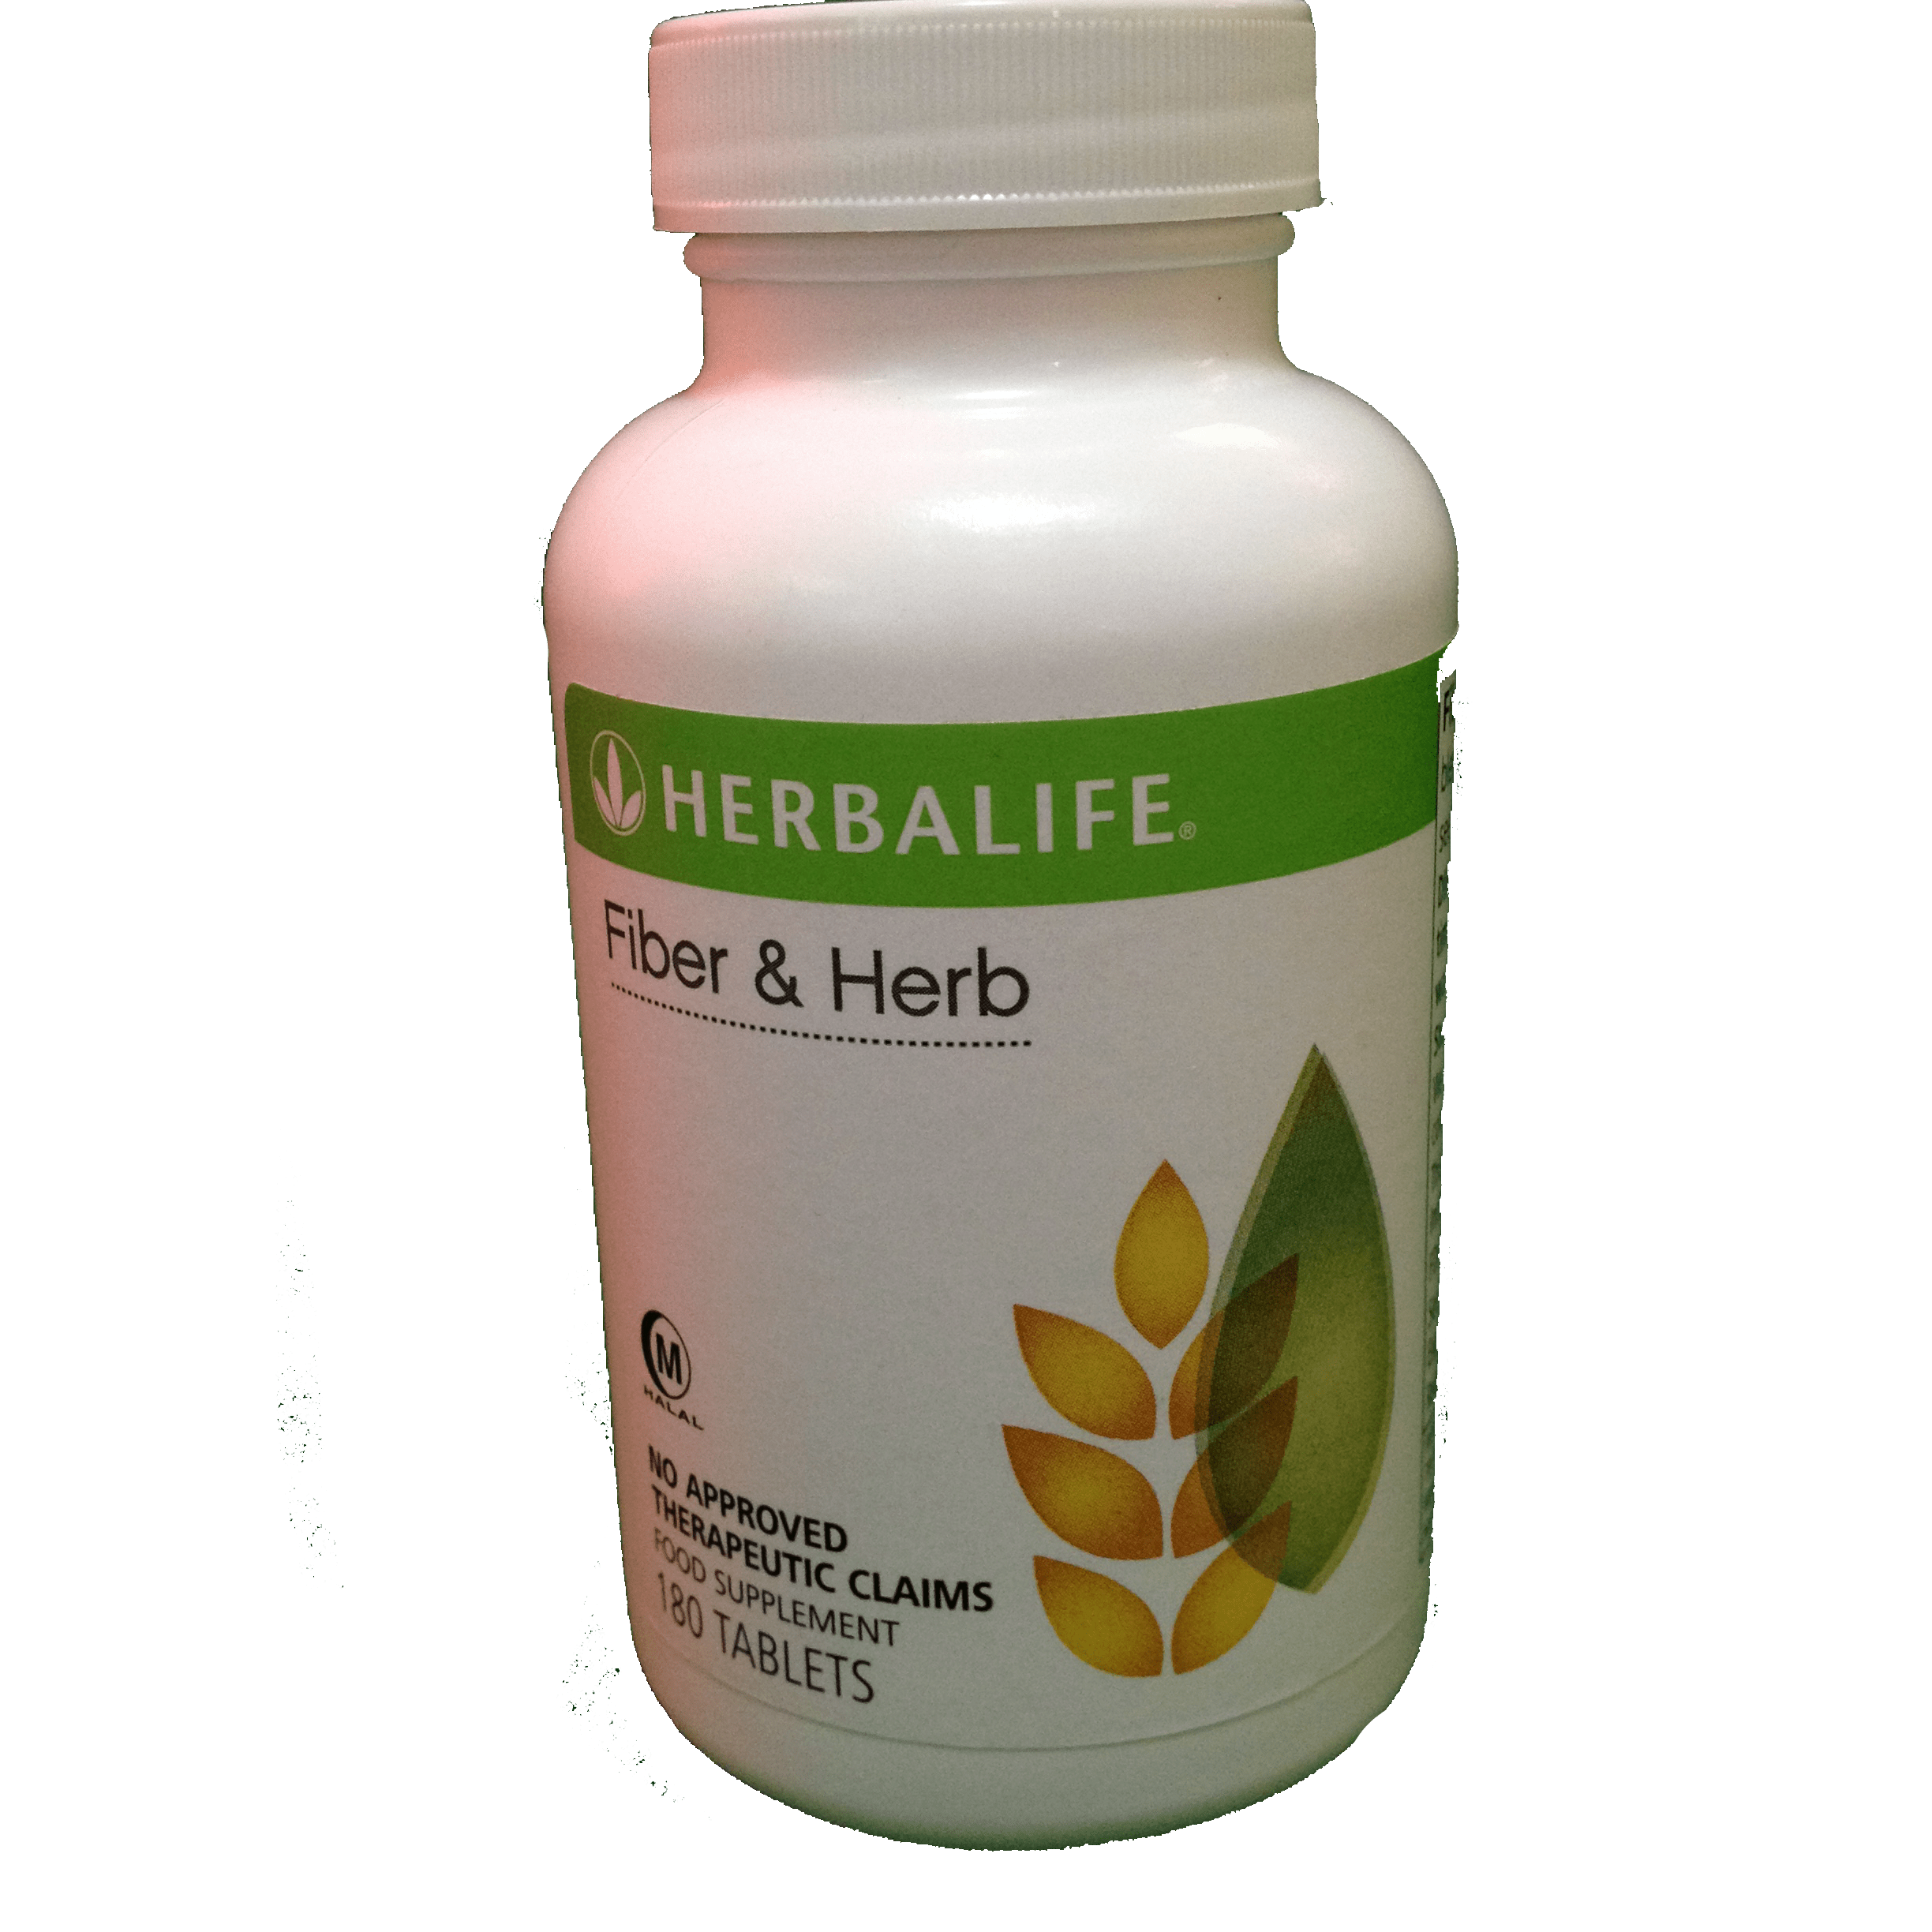 Herbalife Fiber and Herb Supplement